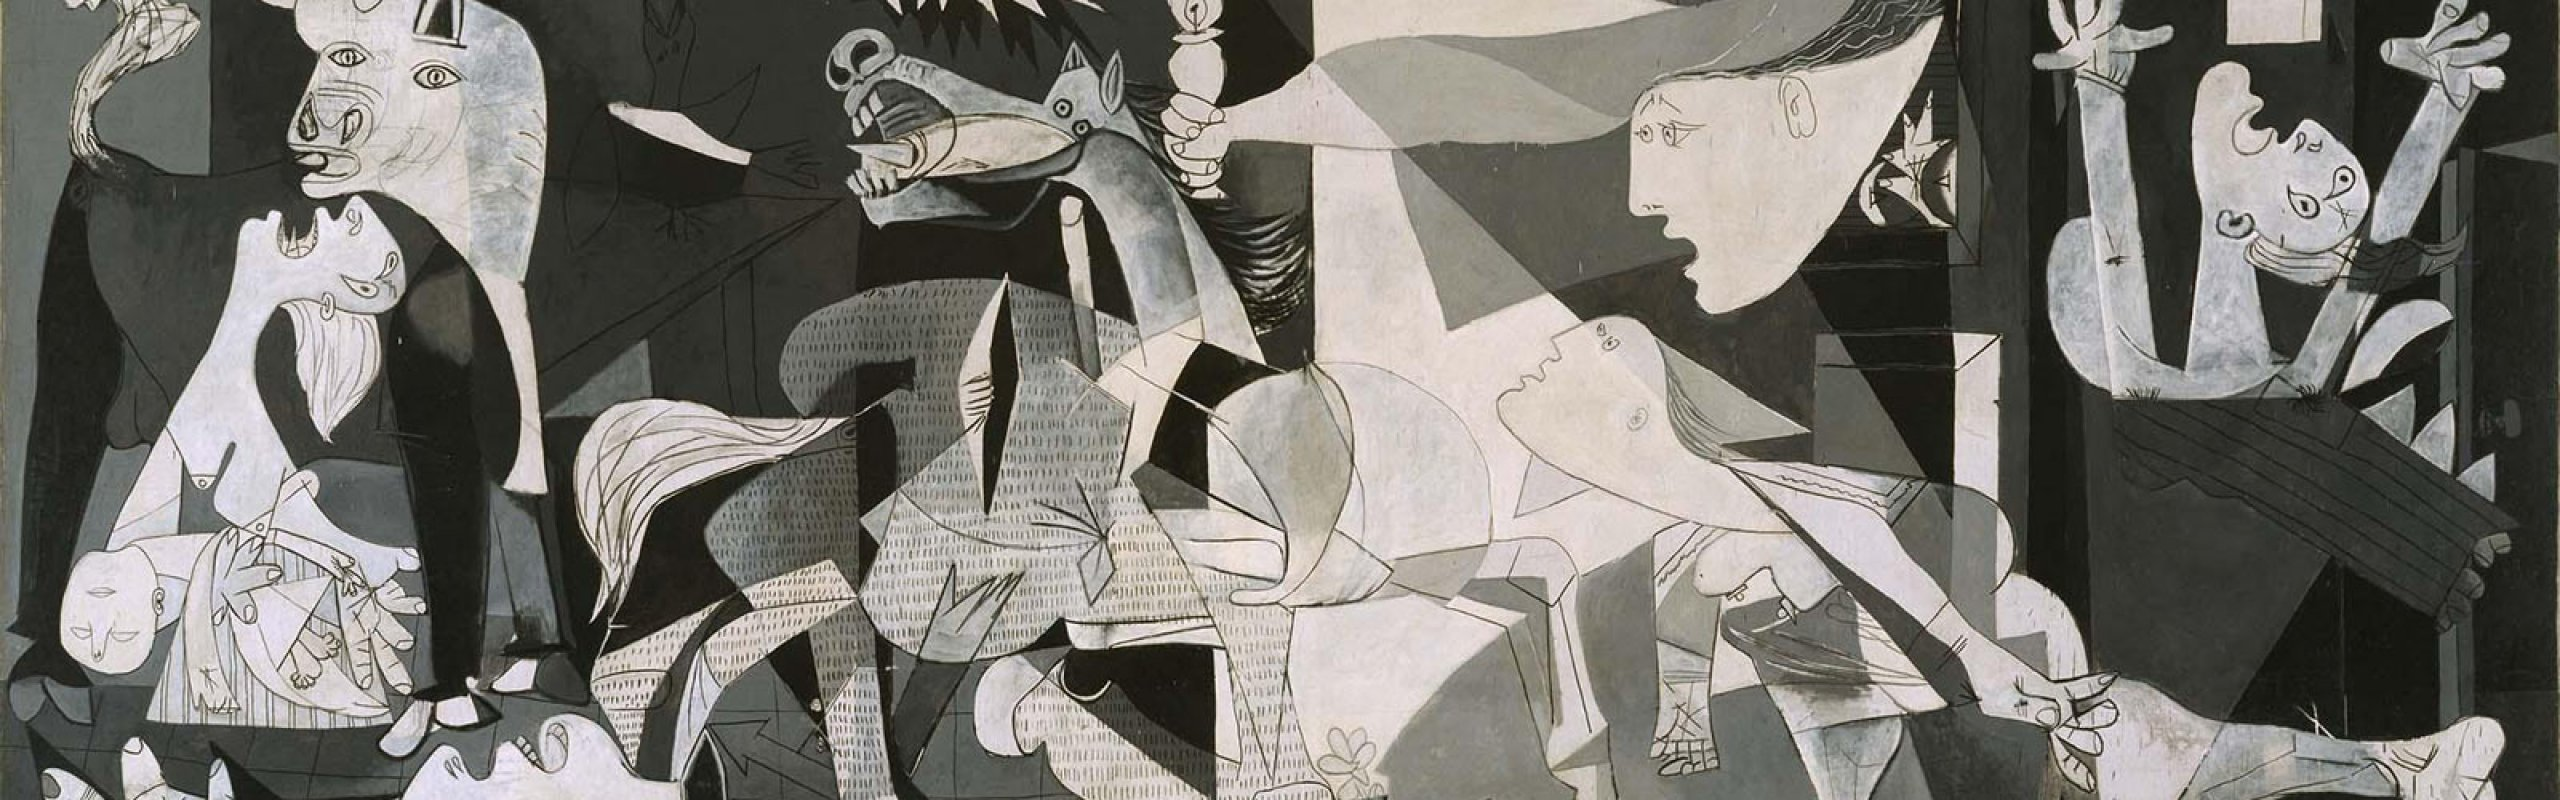 Picasso and the meaning of Guernica